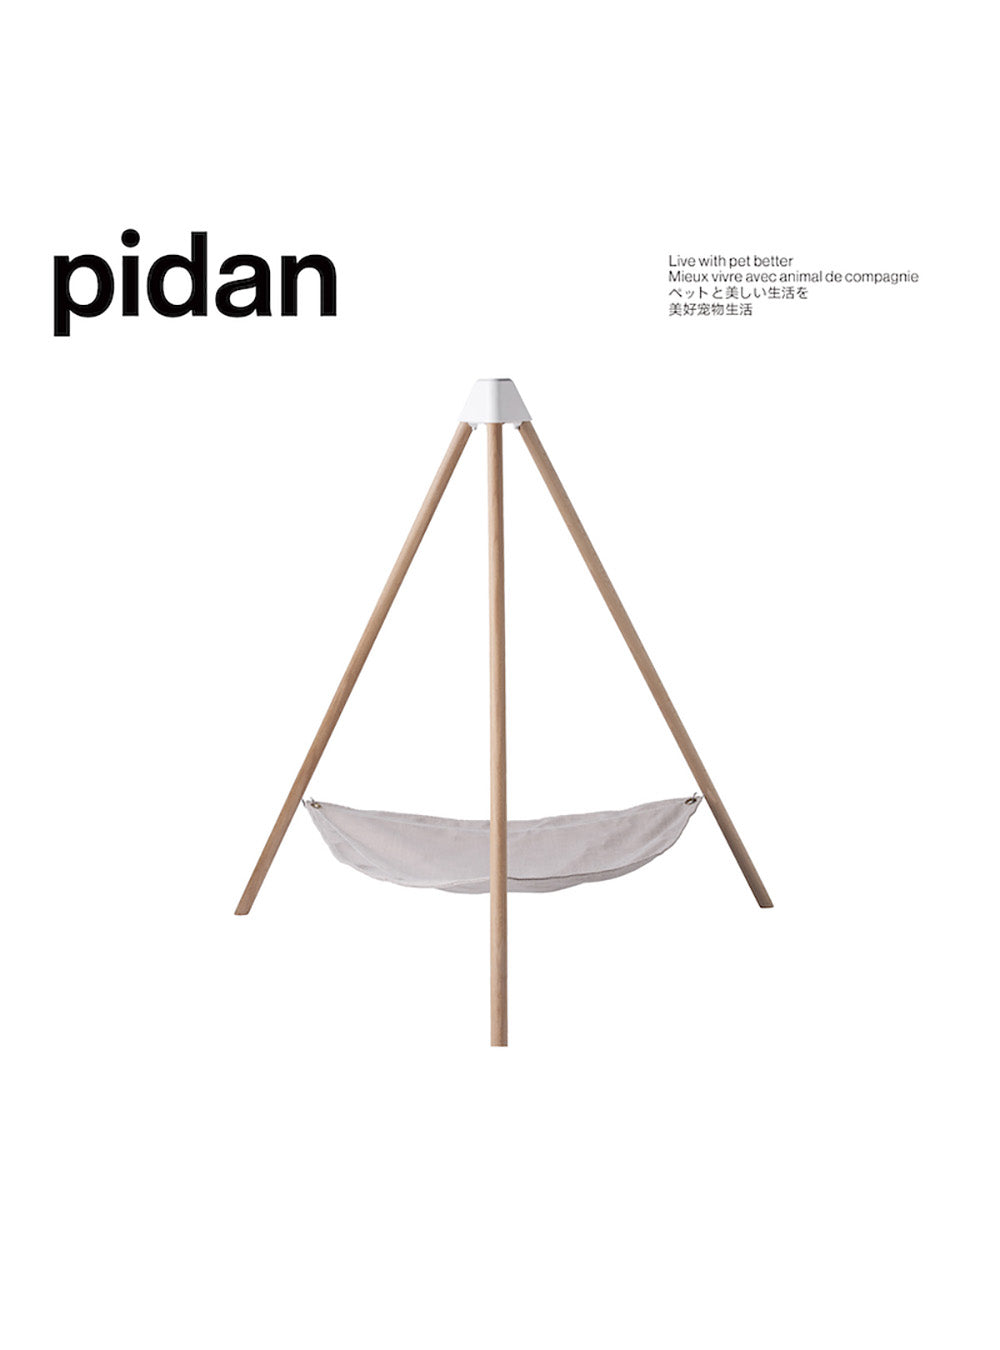 pidan Pet Triangular Hammock Bed